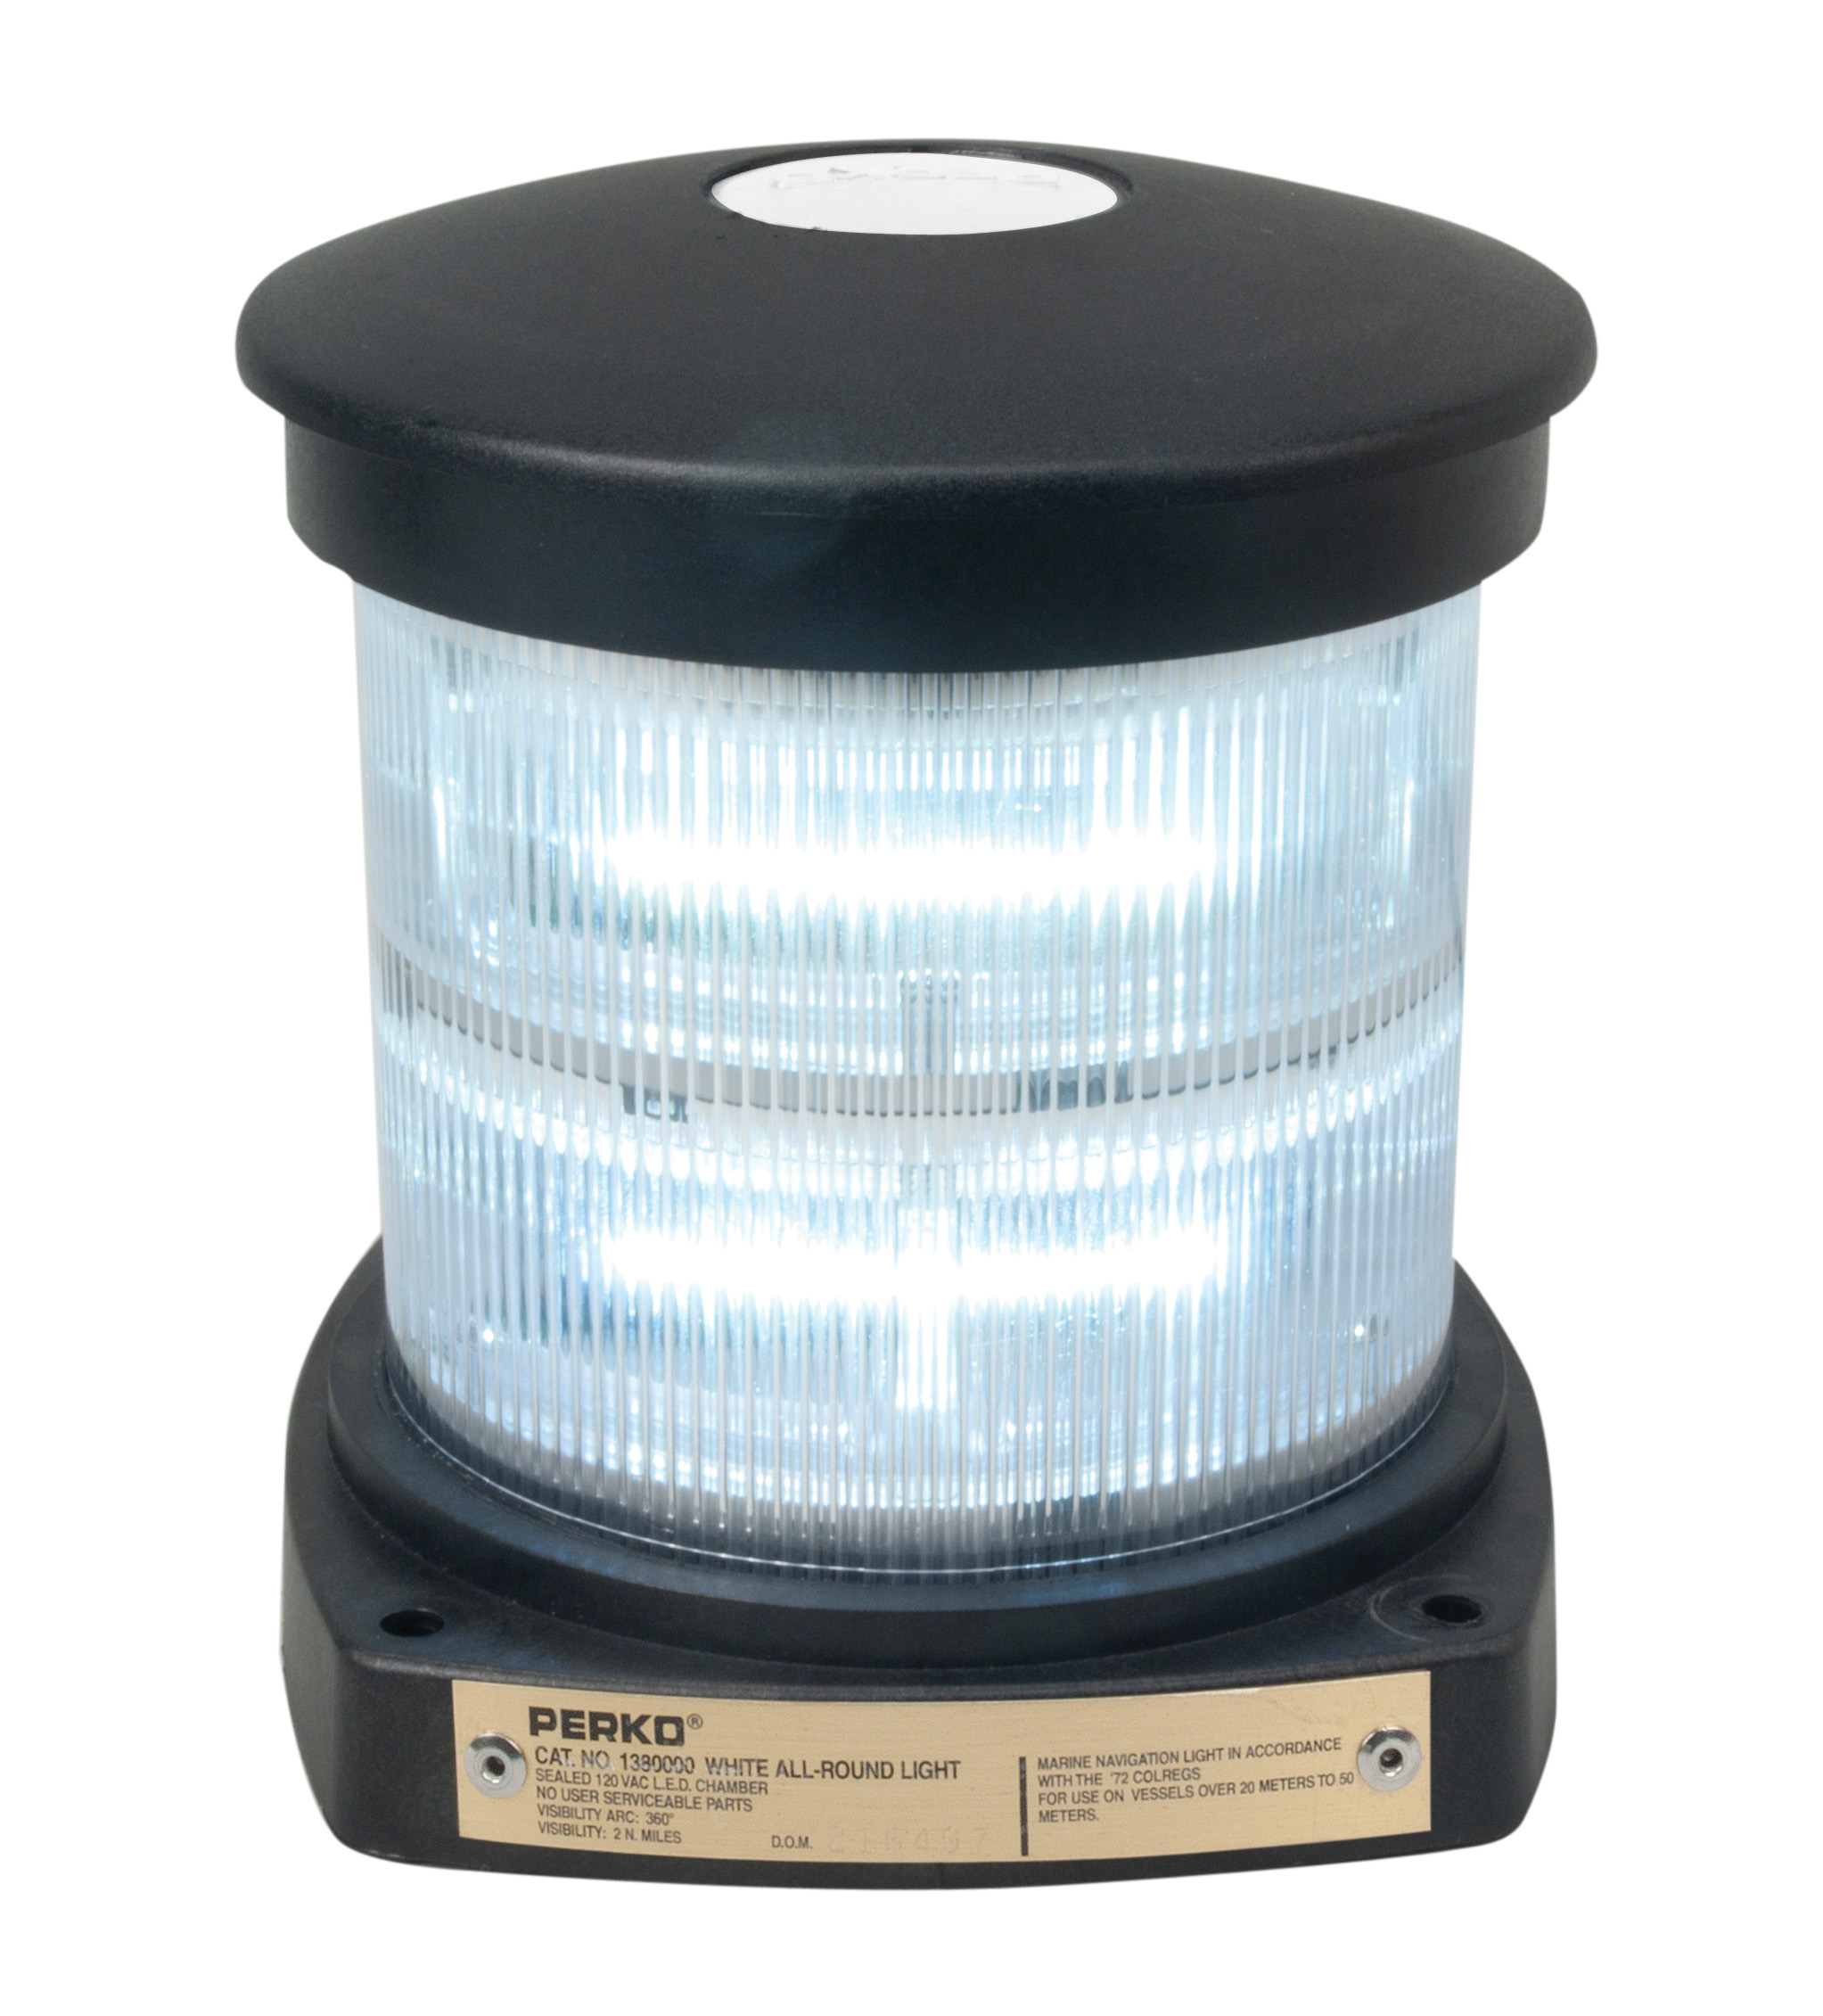 Perko Led Navigation Lights